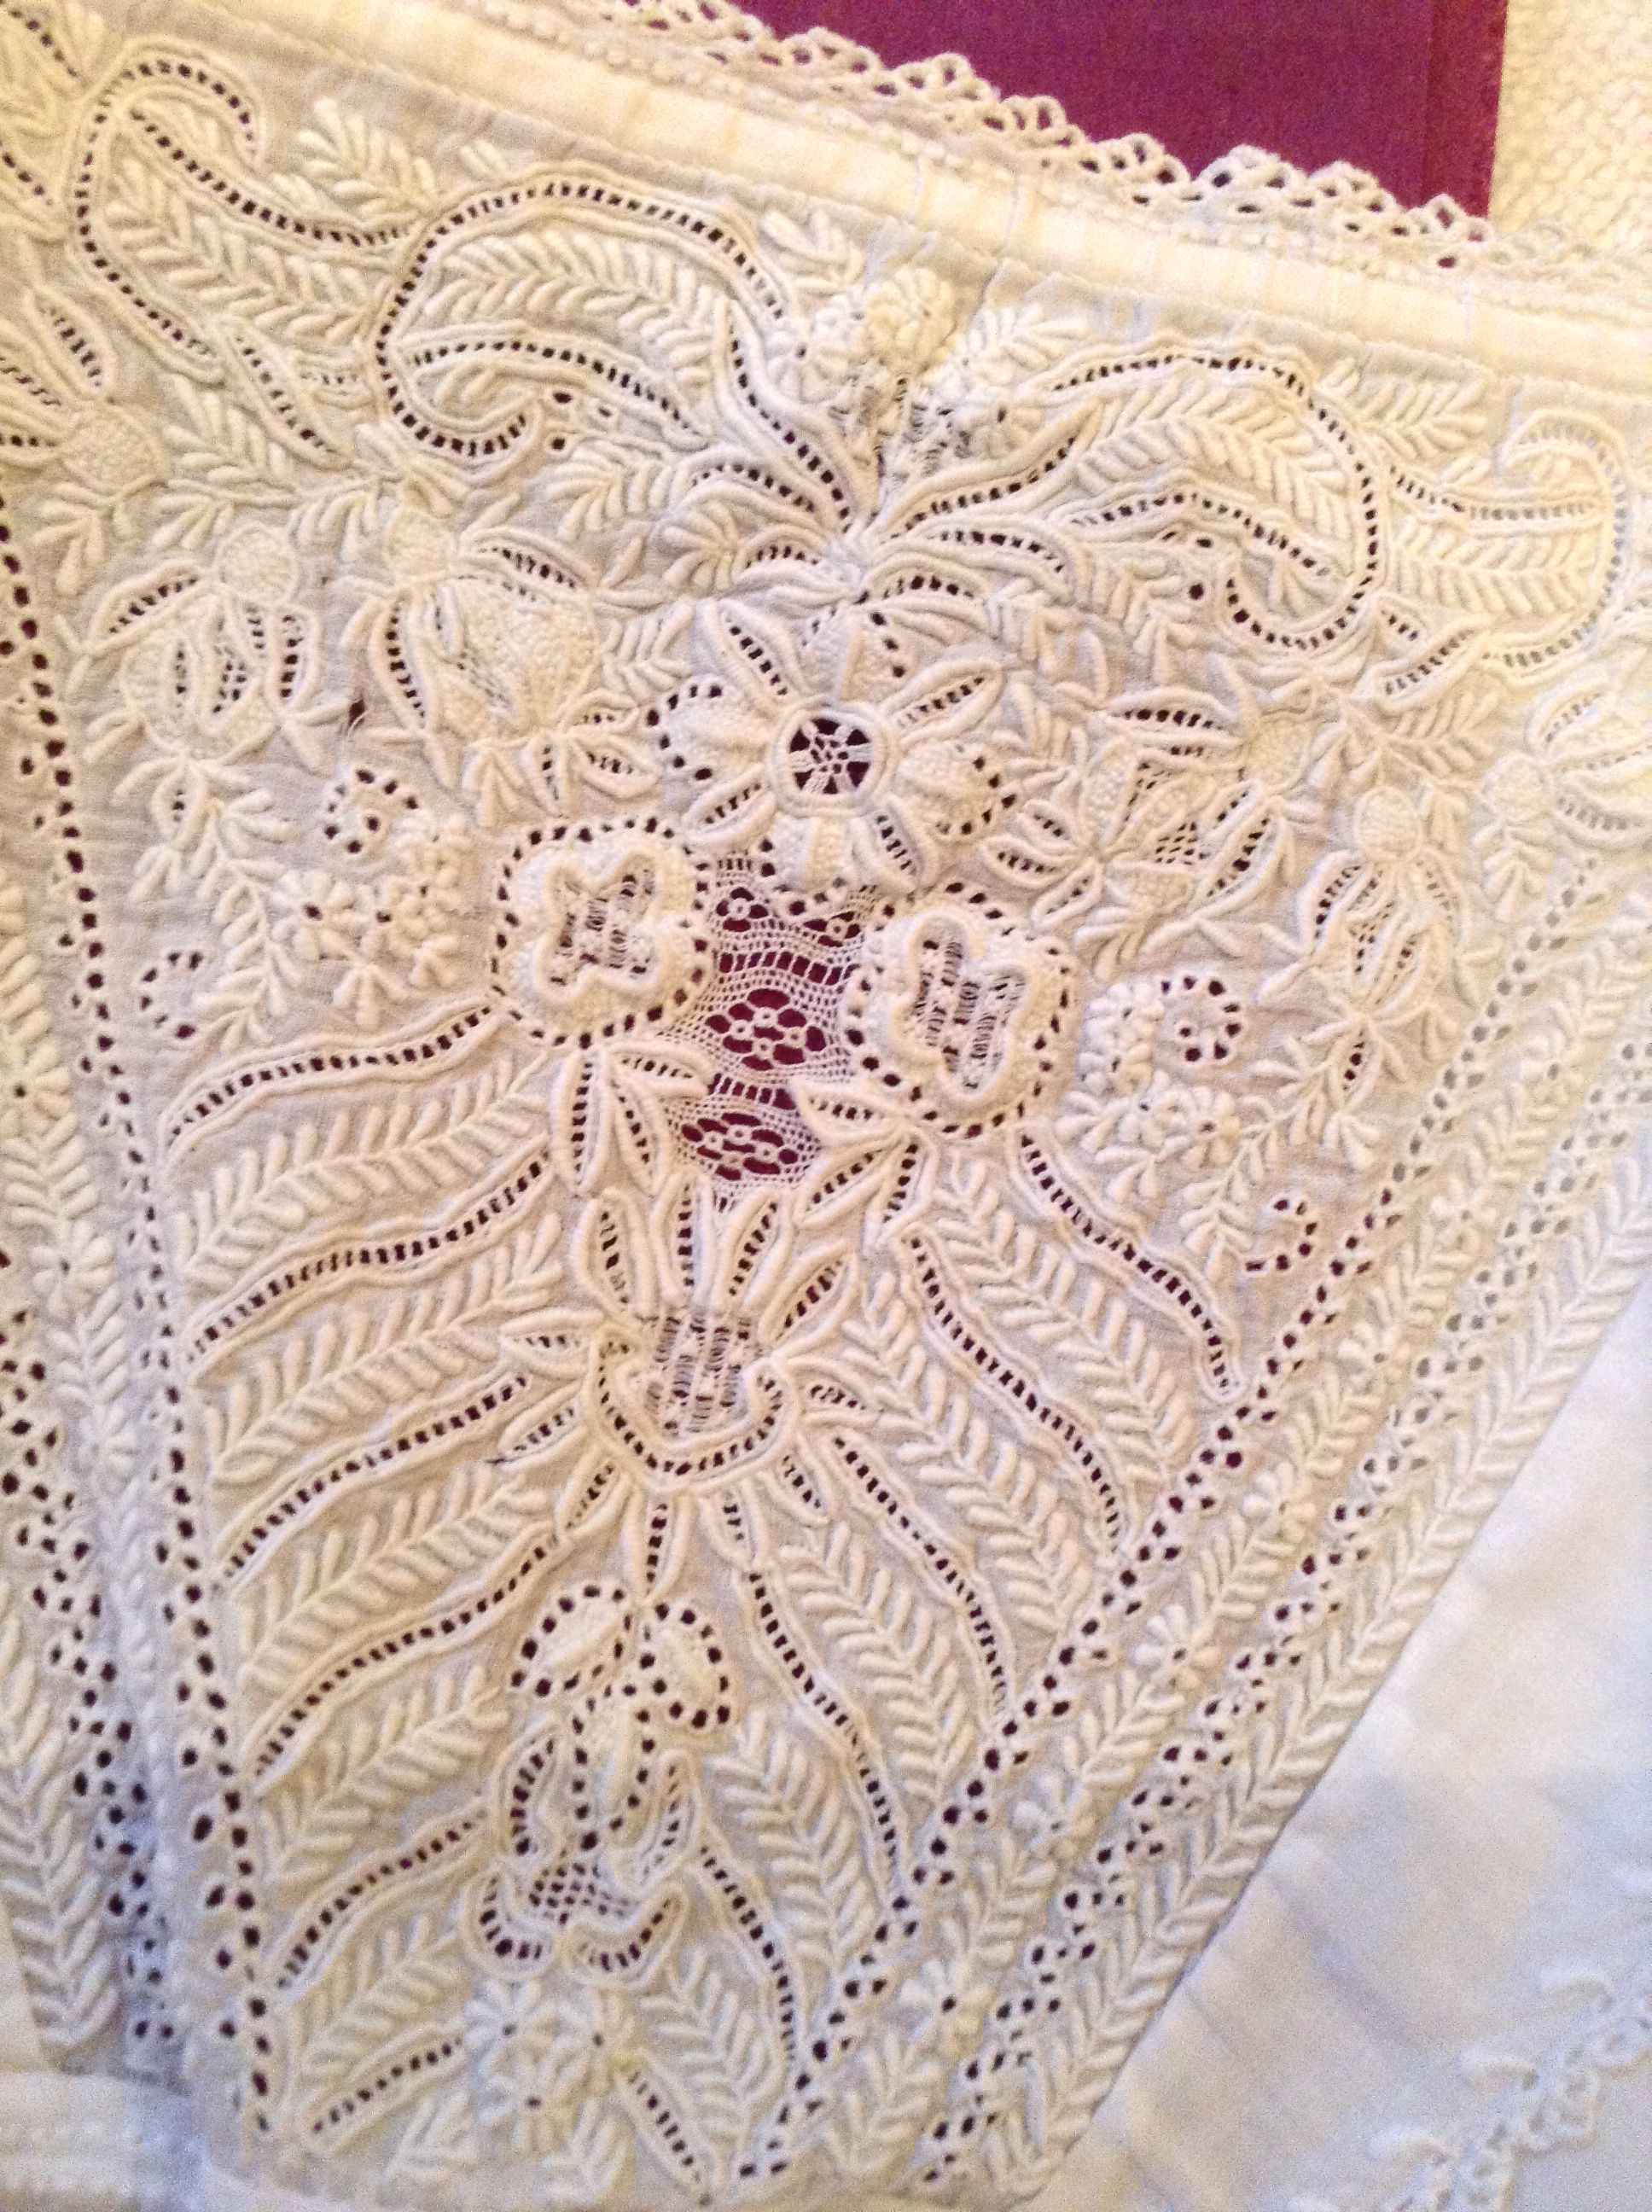 Ayrshire embroidered bodice from christening gown